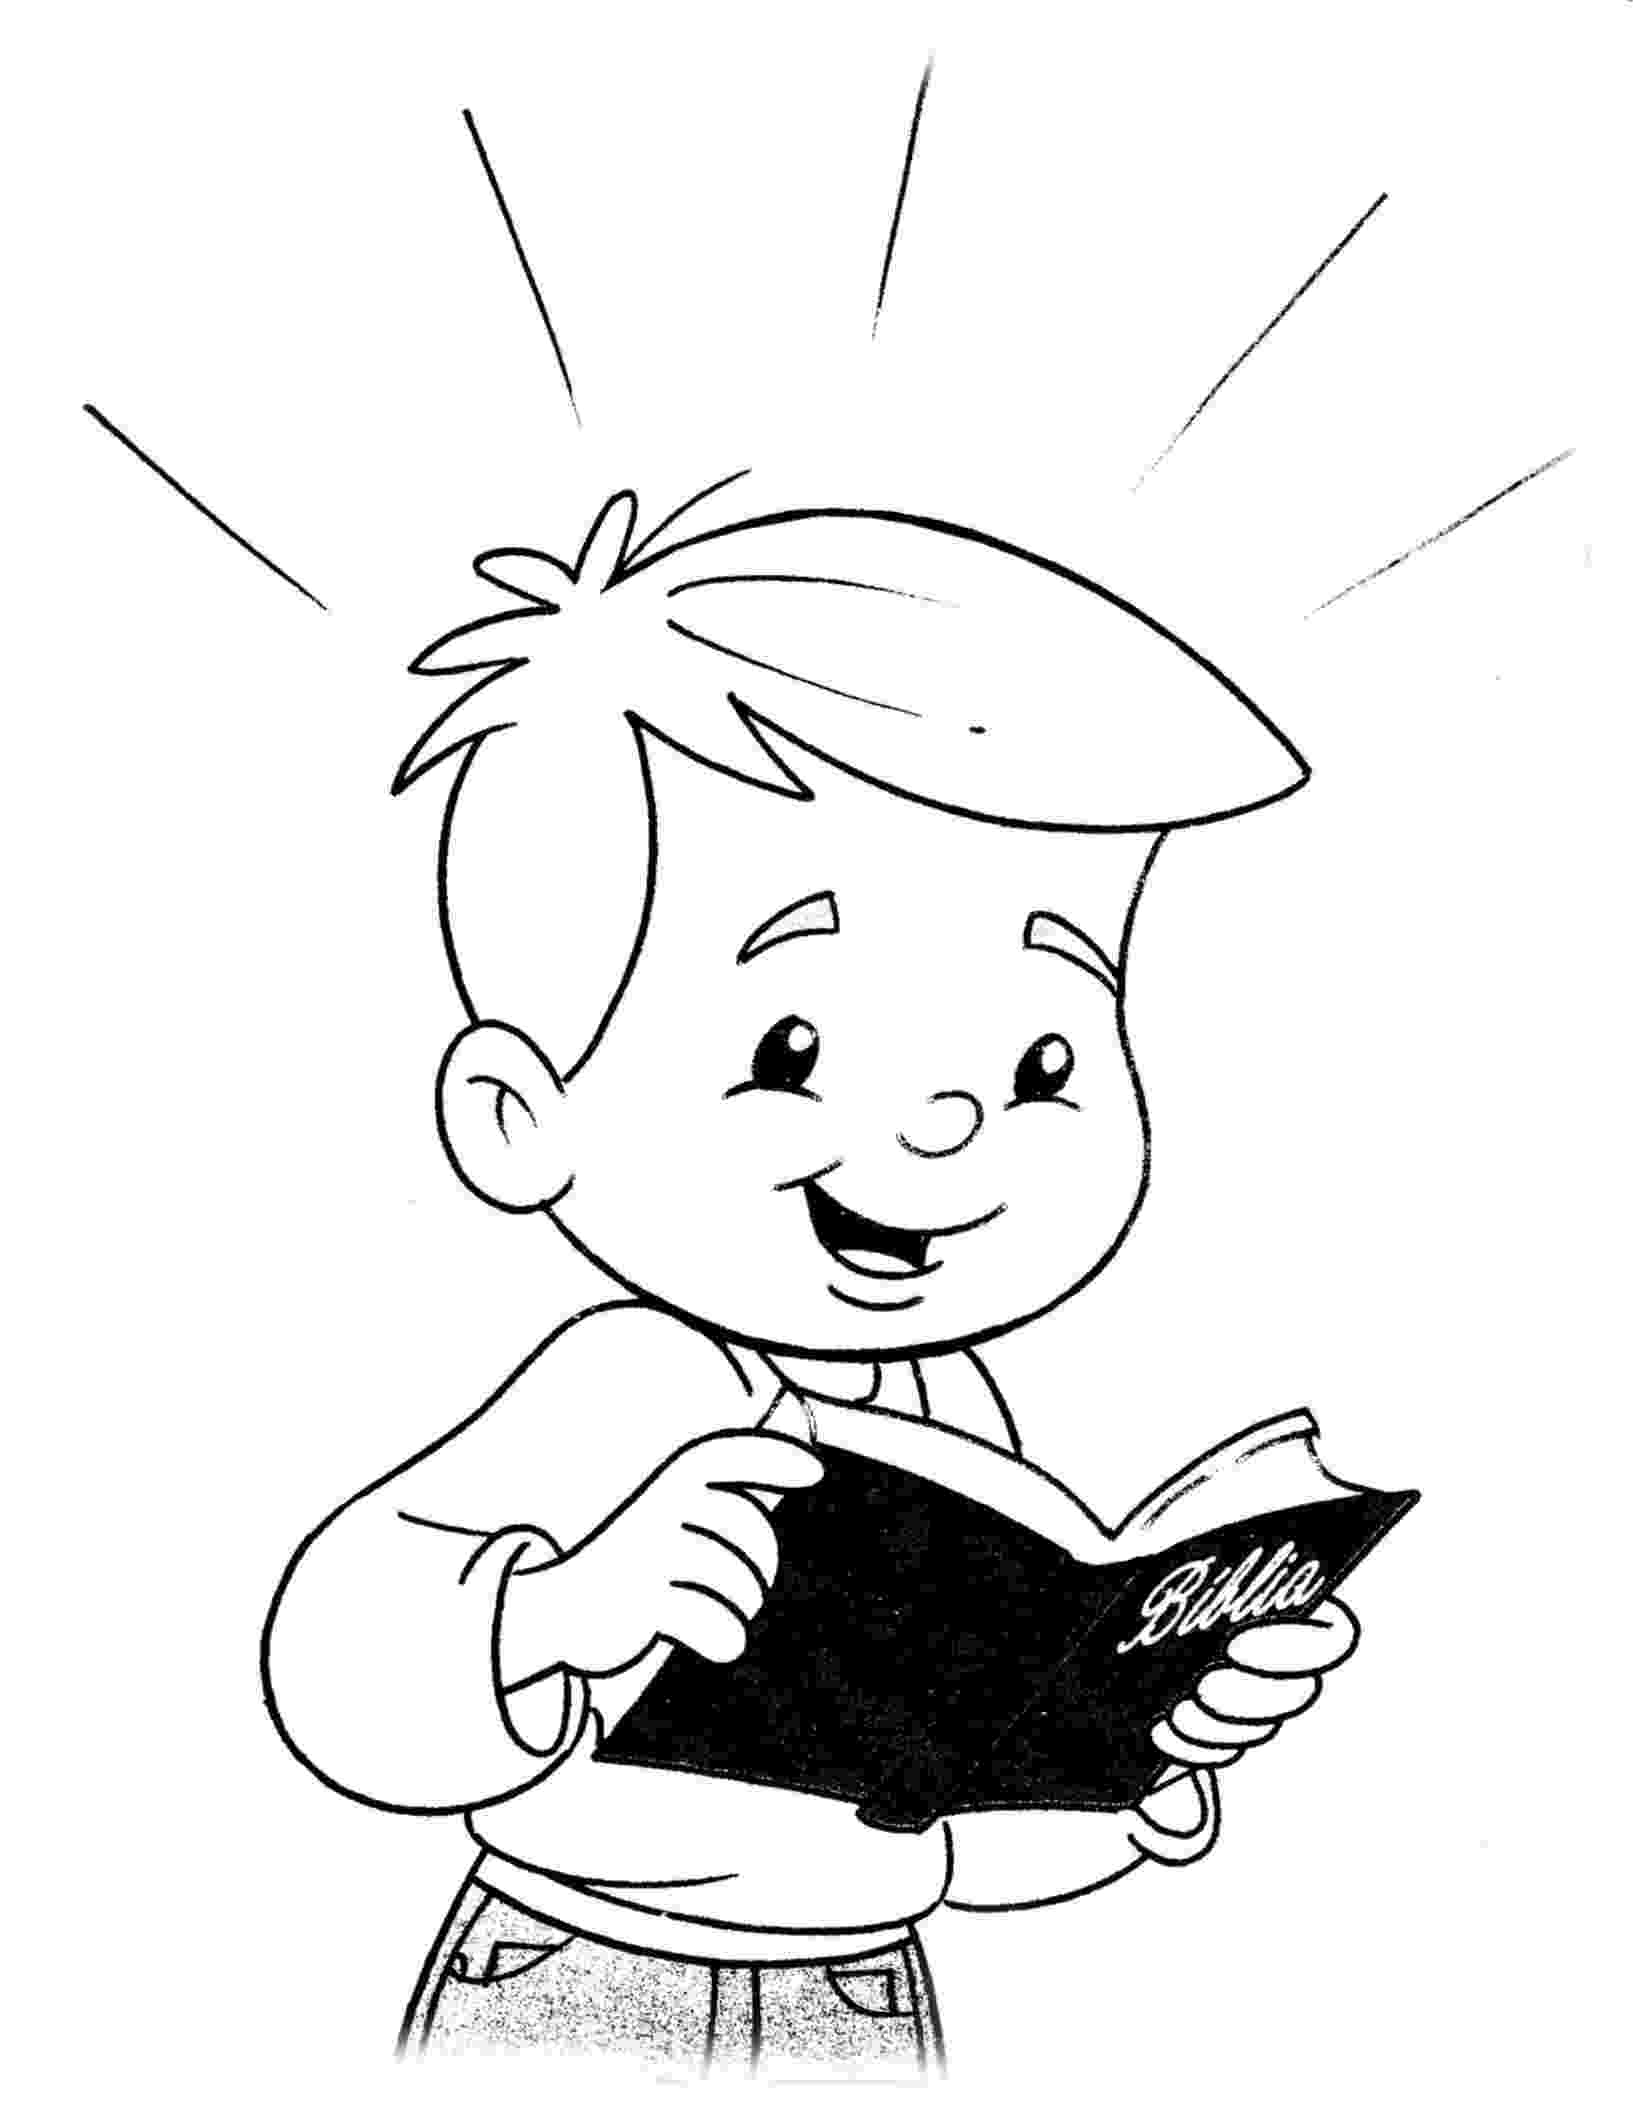 bible coloring pages for kids coloring lab for kids bible pages coloring